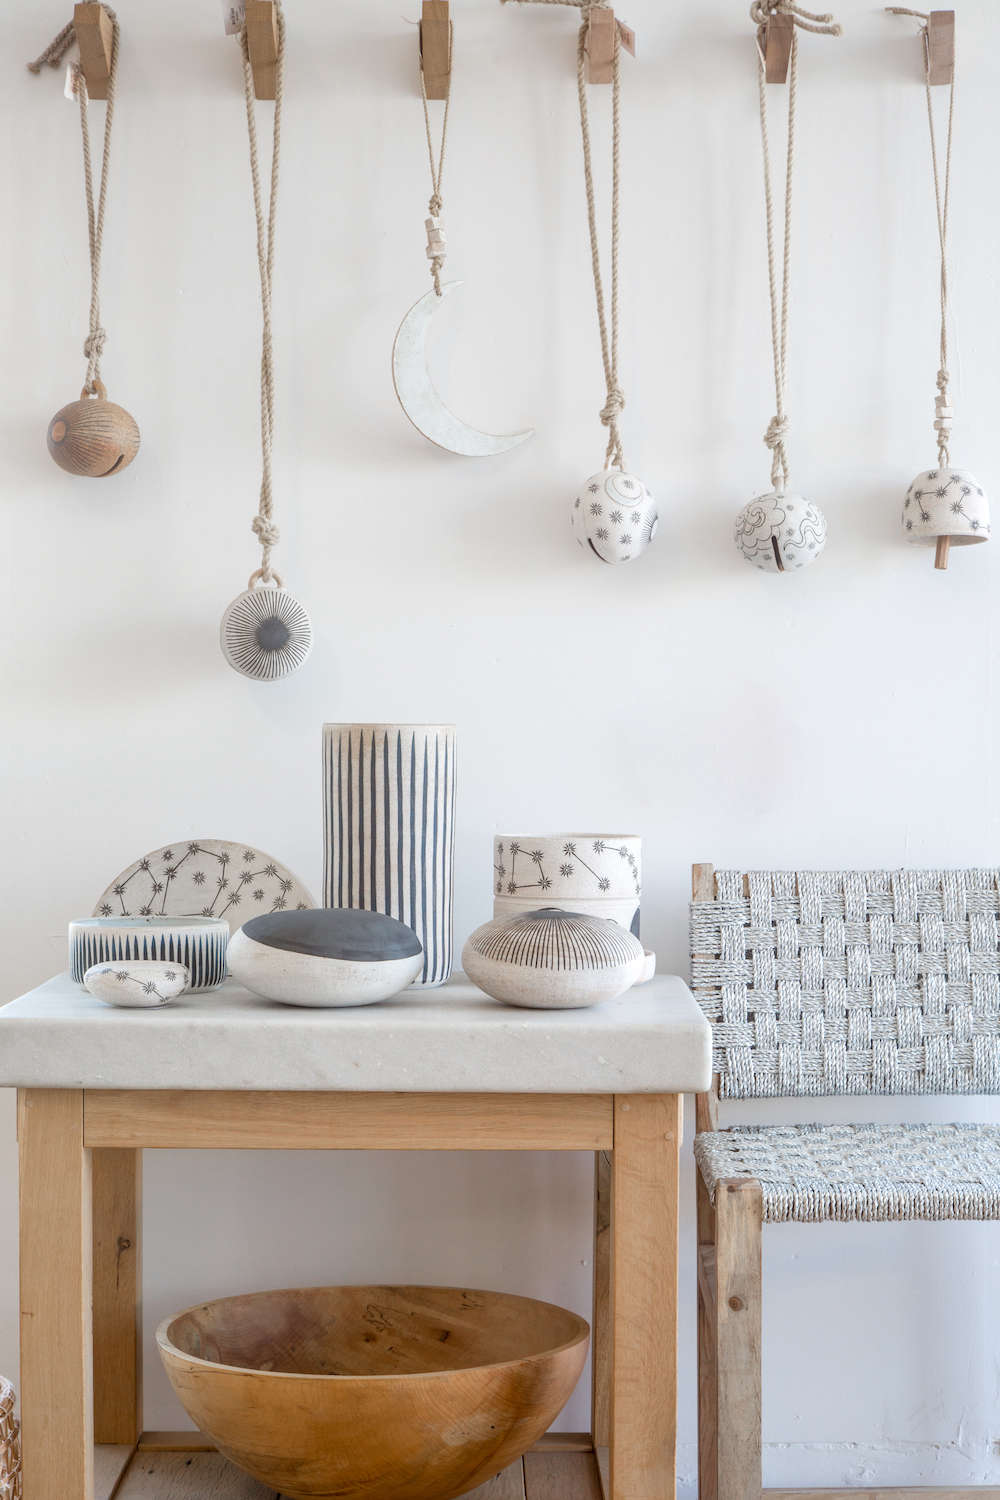 M Quan Studio handmade ceramics, modern wall decor